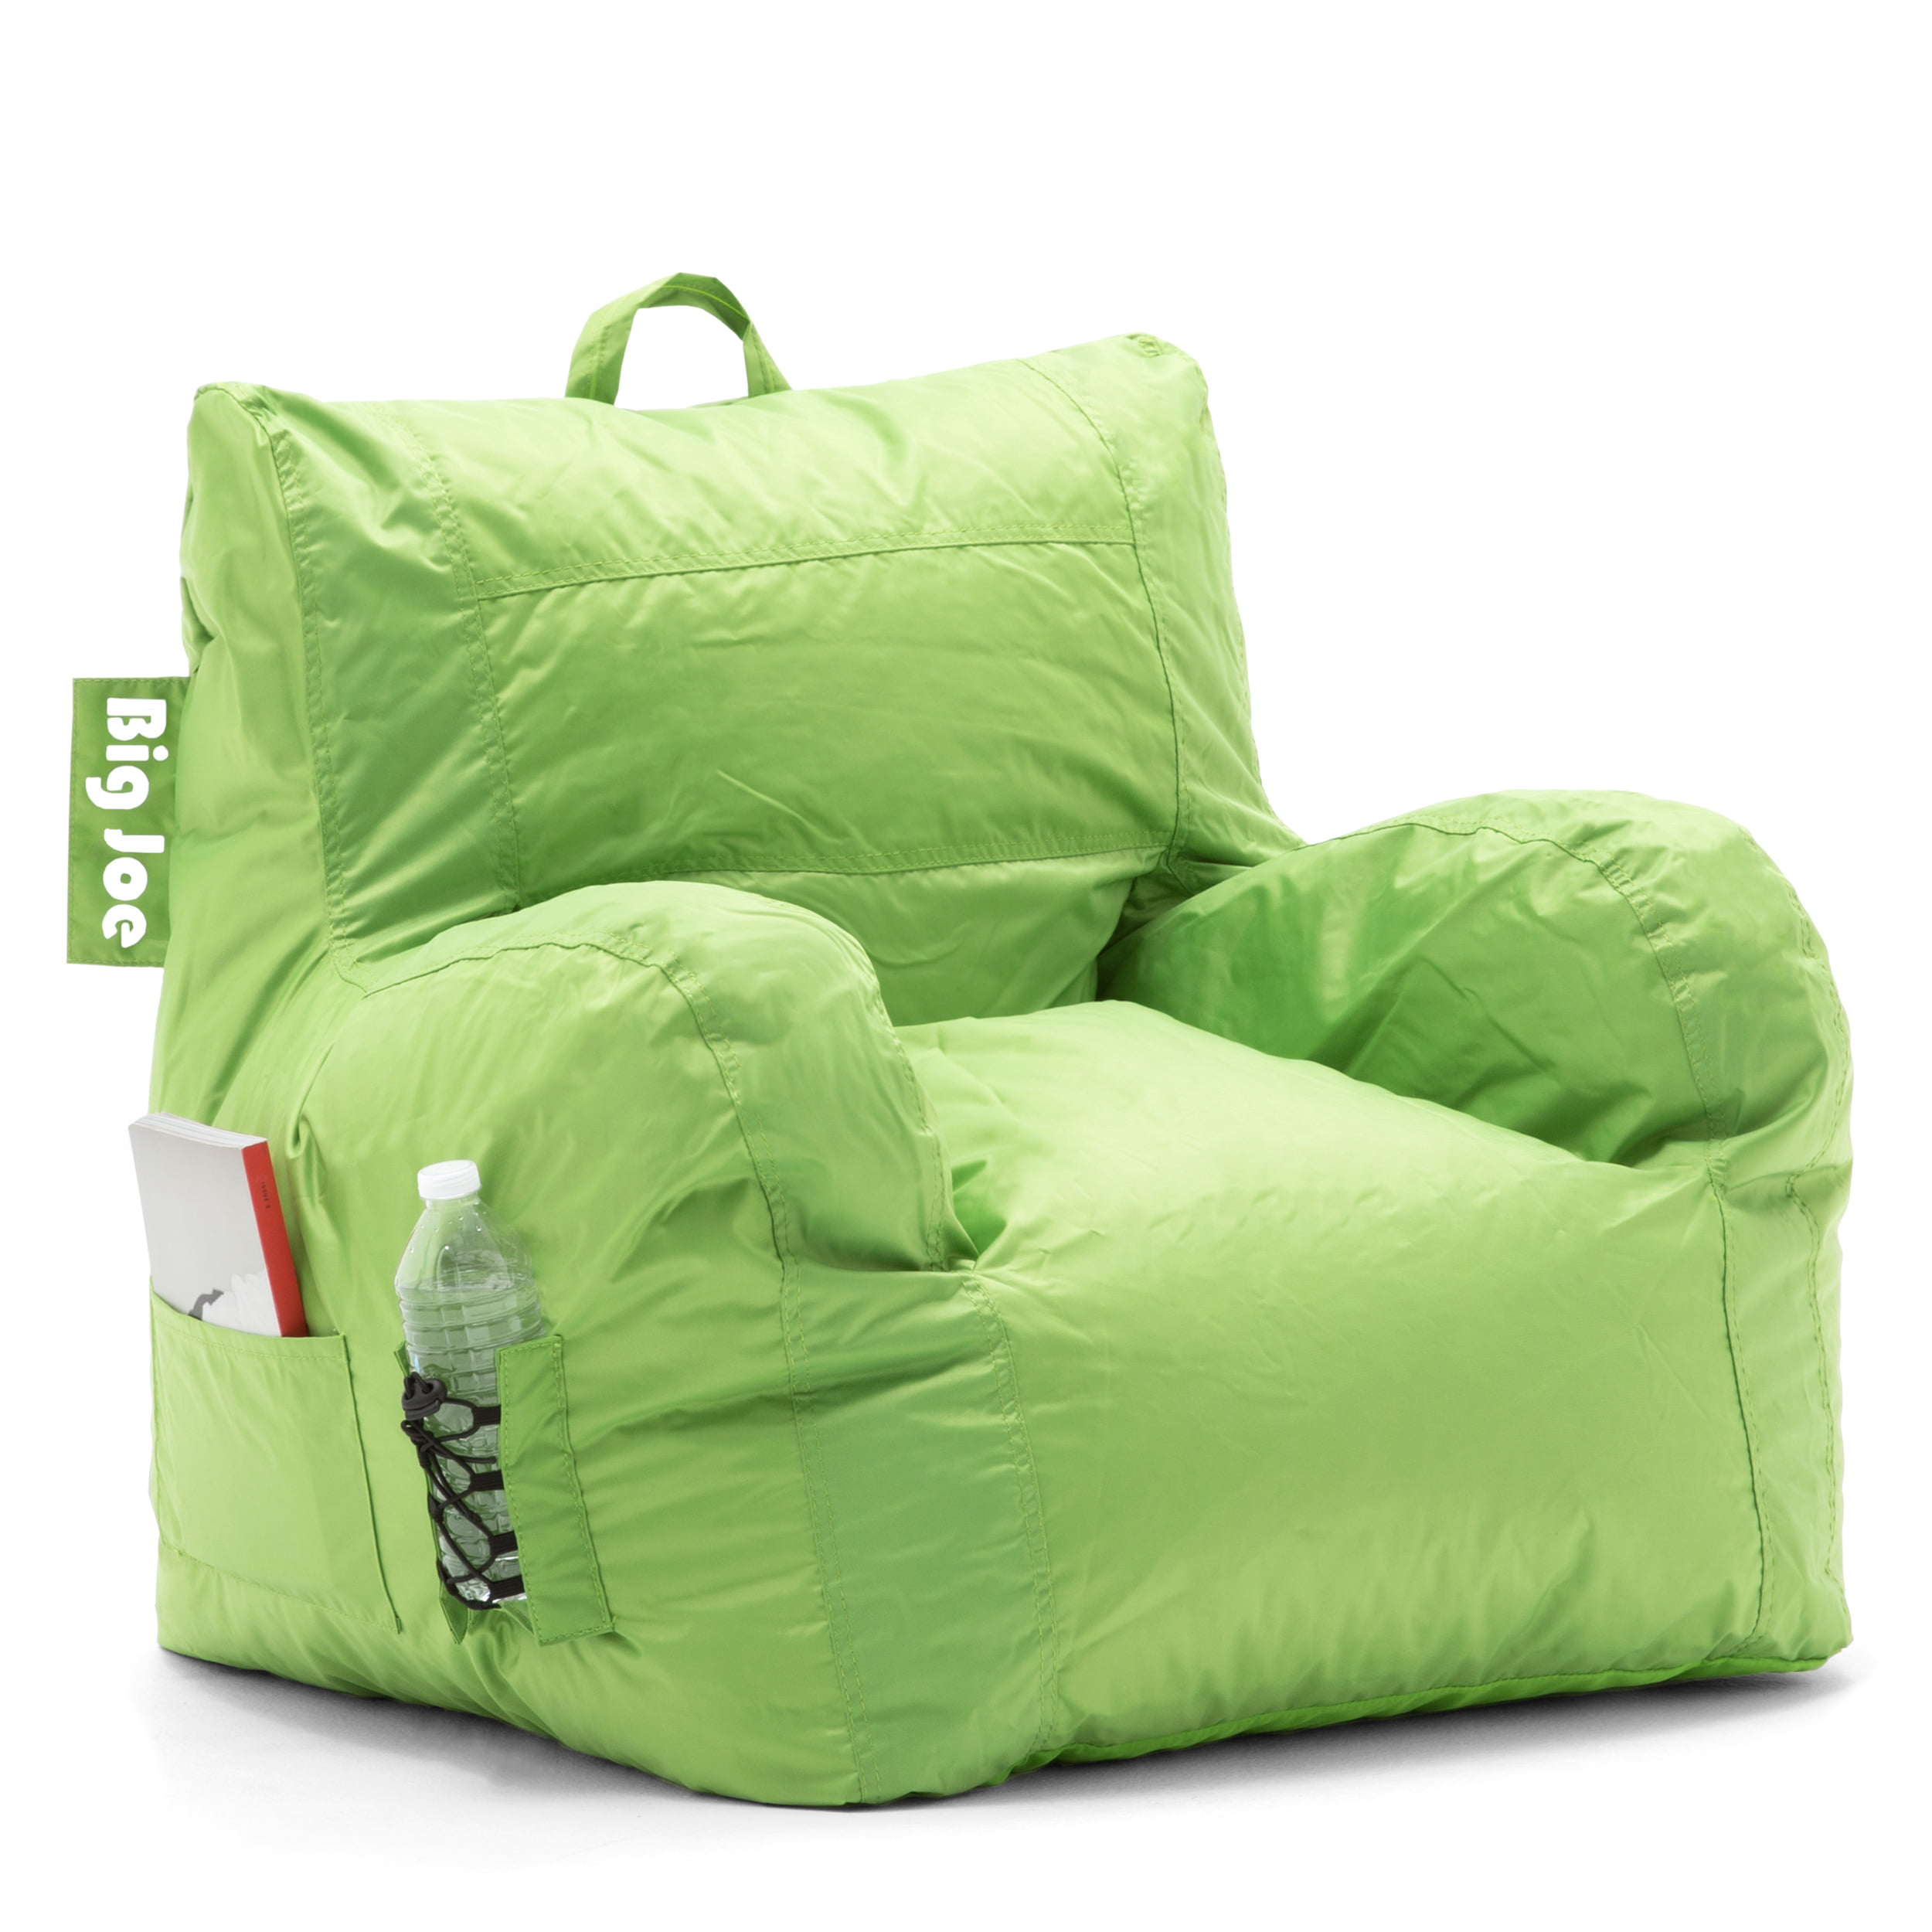 Groovy Big Joe Bean Bag Chair Multiple Colors 33 X 32 X 25 Caraccident5 Cool Chair Designs And Ideas Caraccident5Info